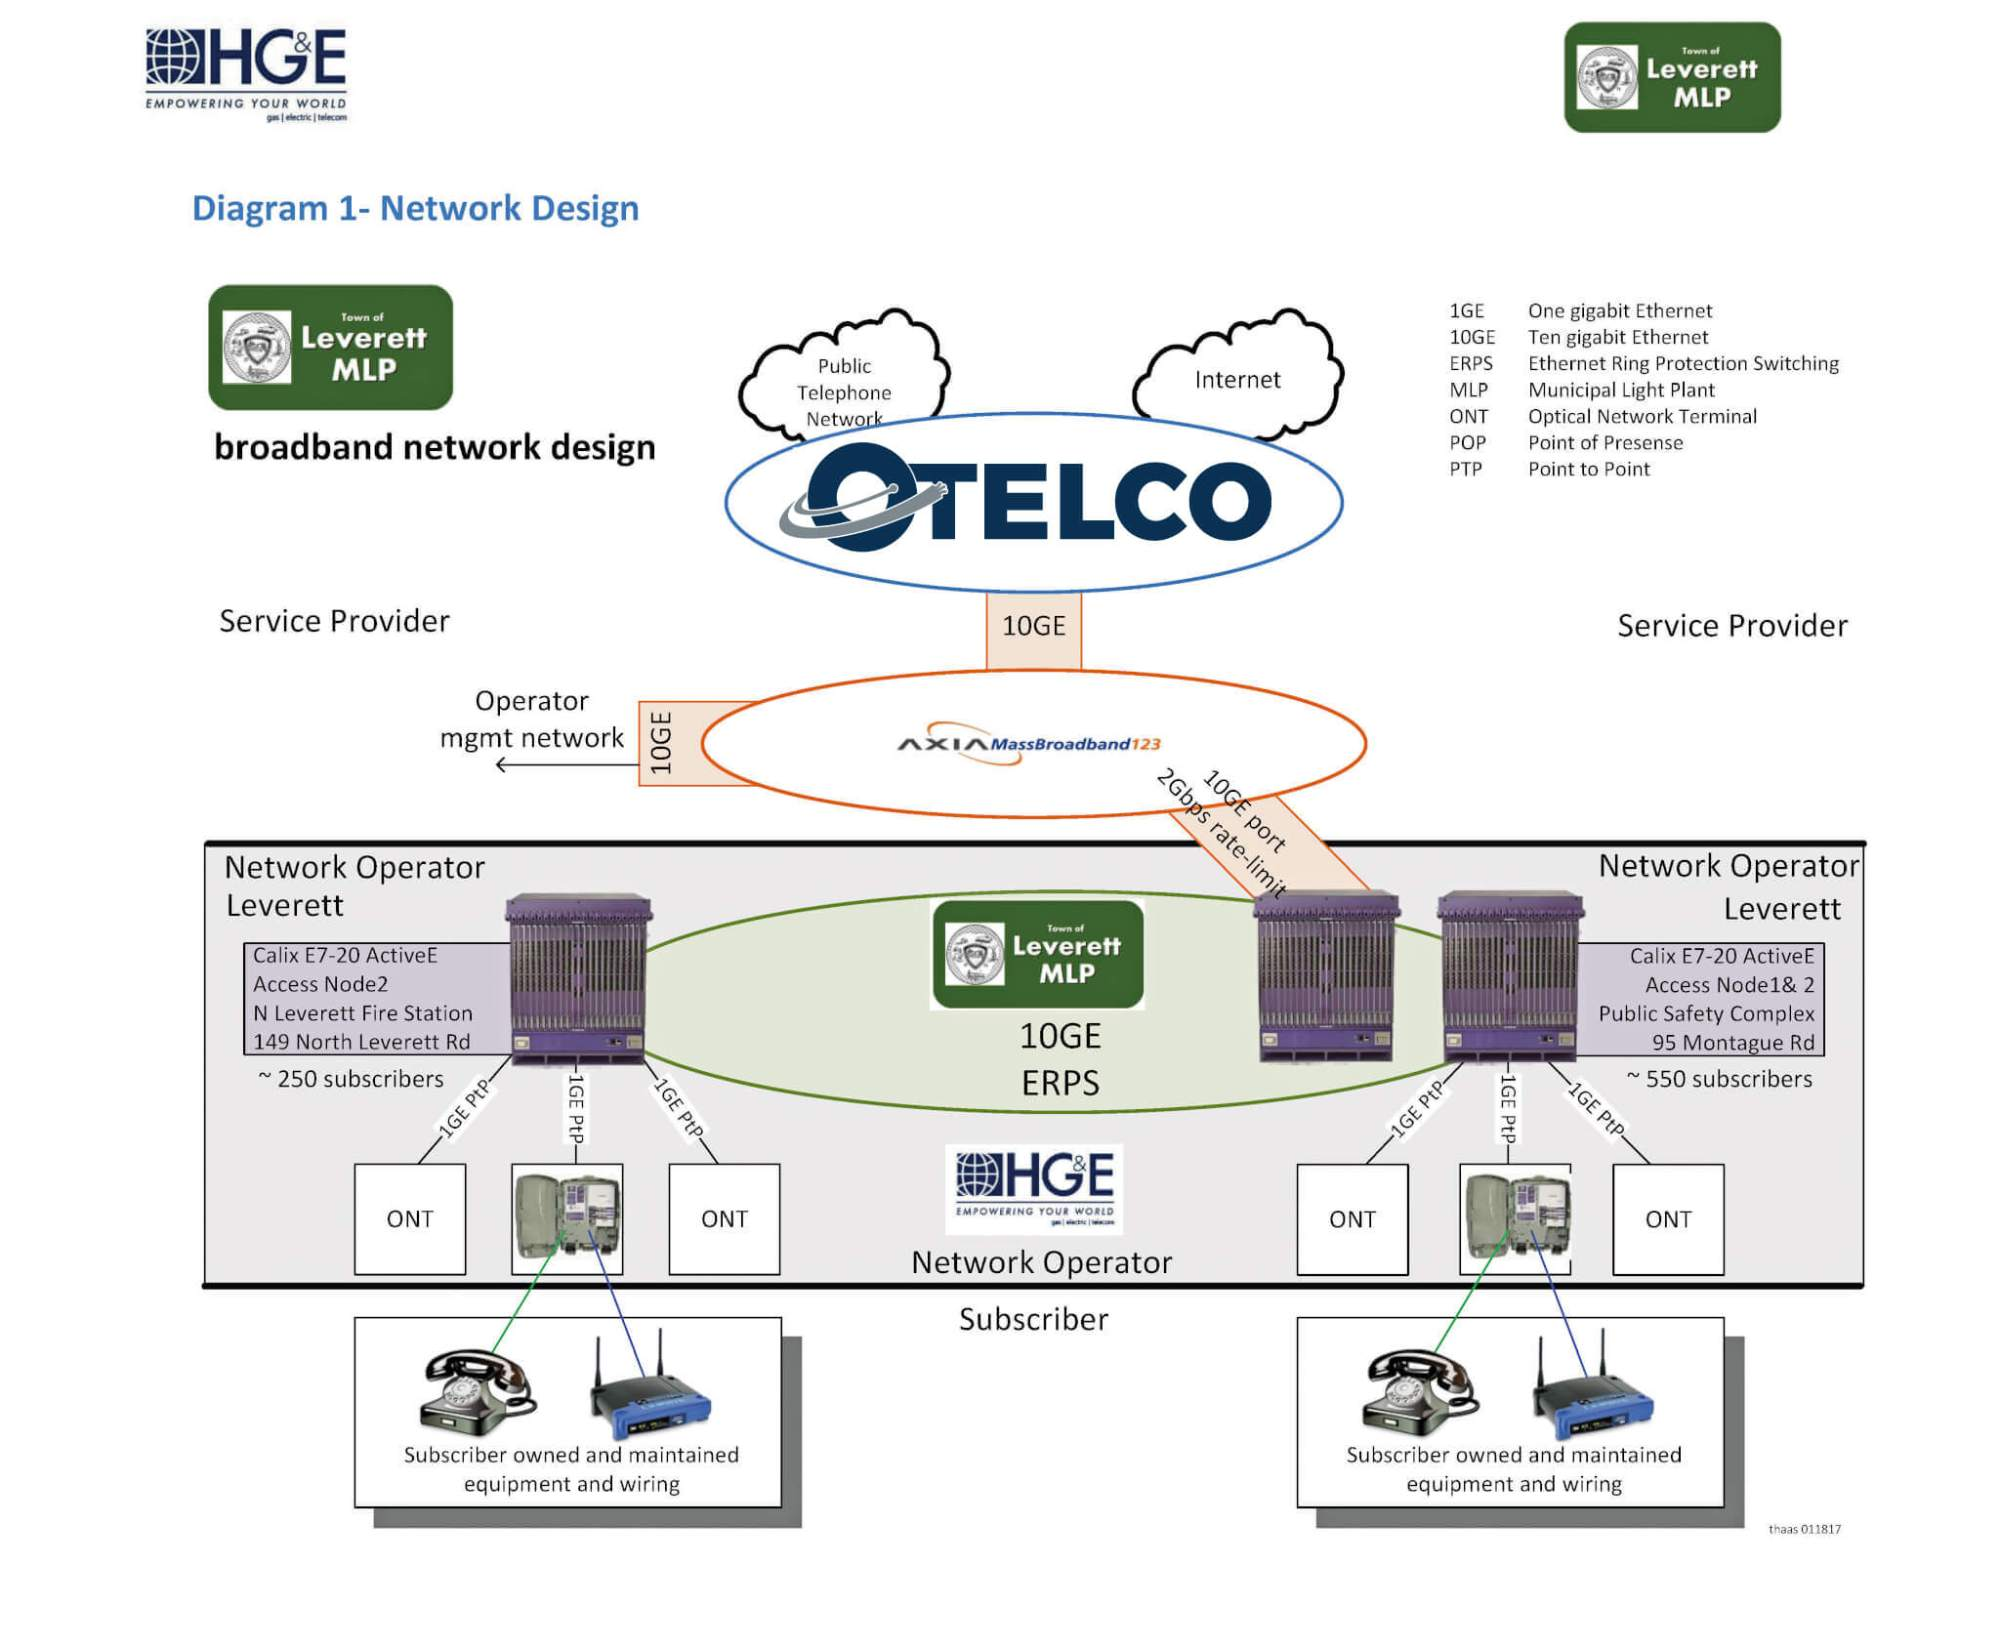 hight resolution of the isp is an entity that provides internet service over the network otelco is the isp for leverettnet